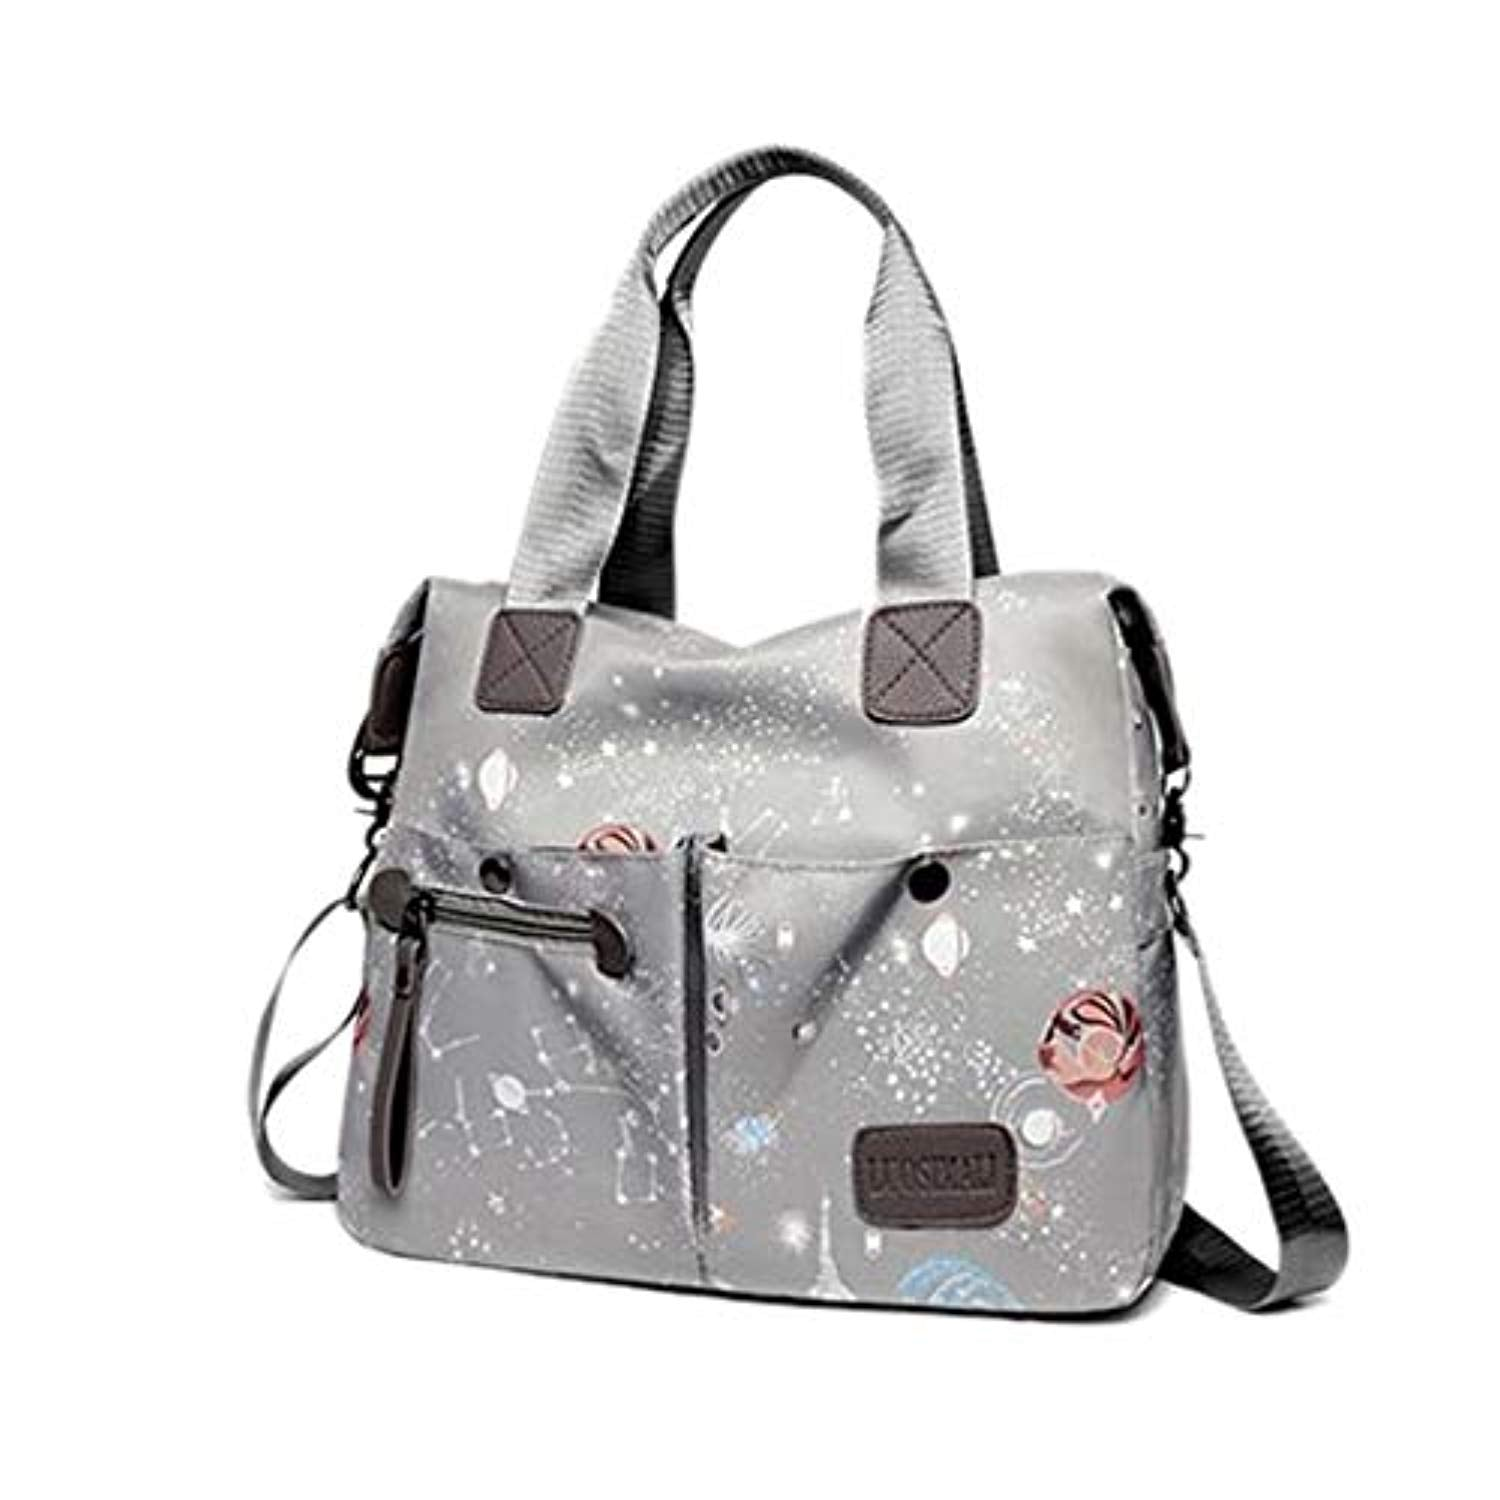 New Uk Ladies Cross Body Messenger Hand Bag Multi Pockets Two Compartments Bag